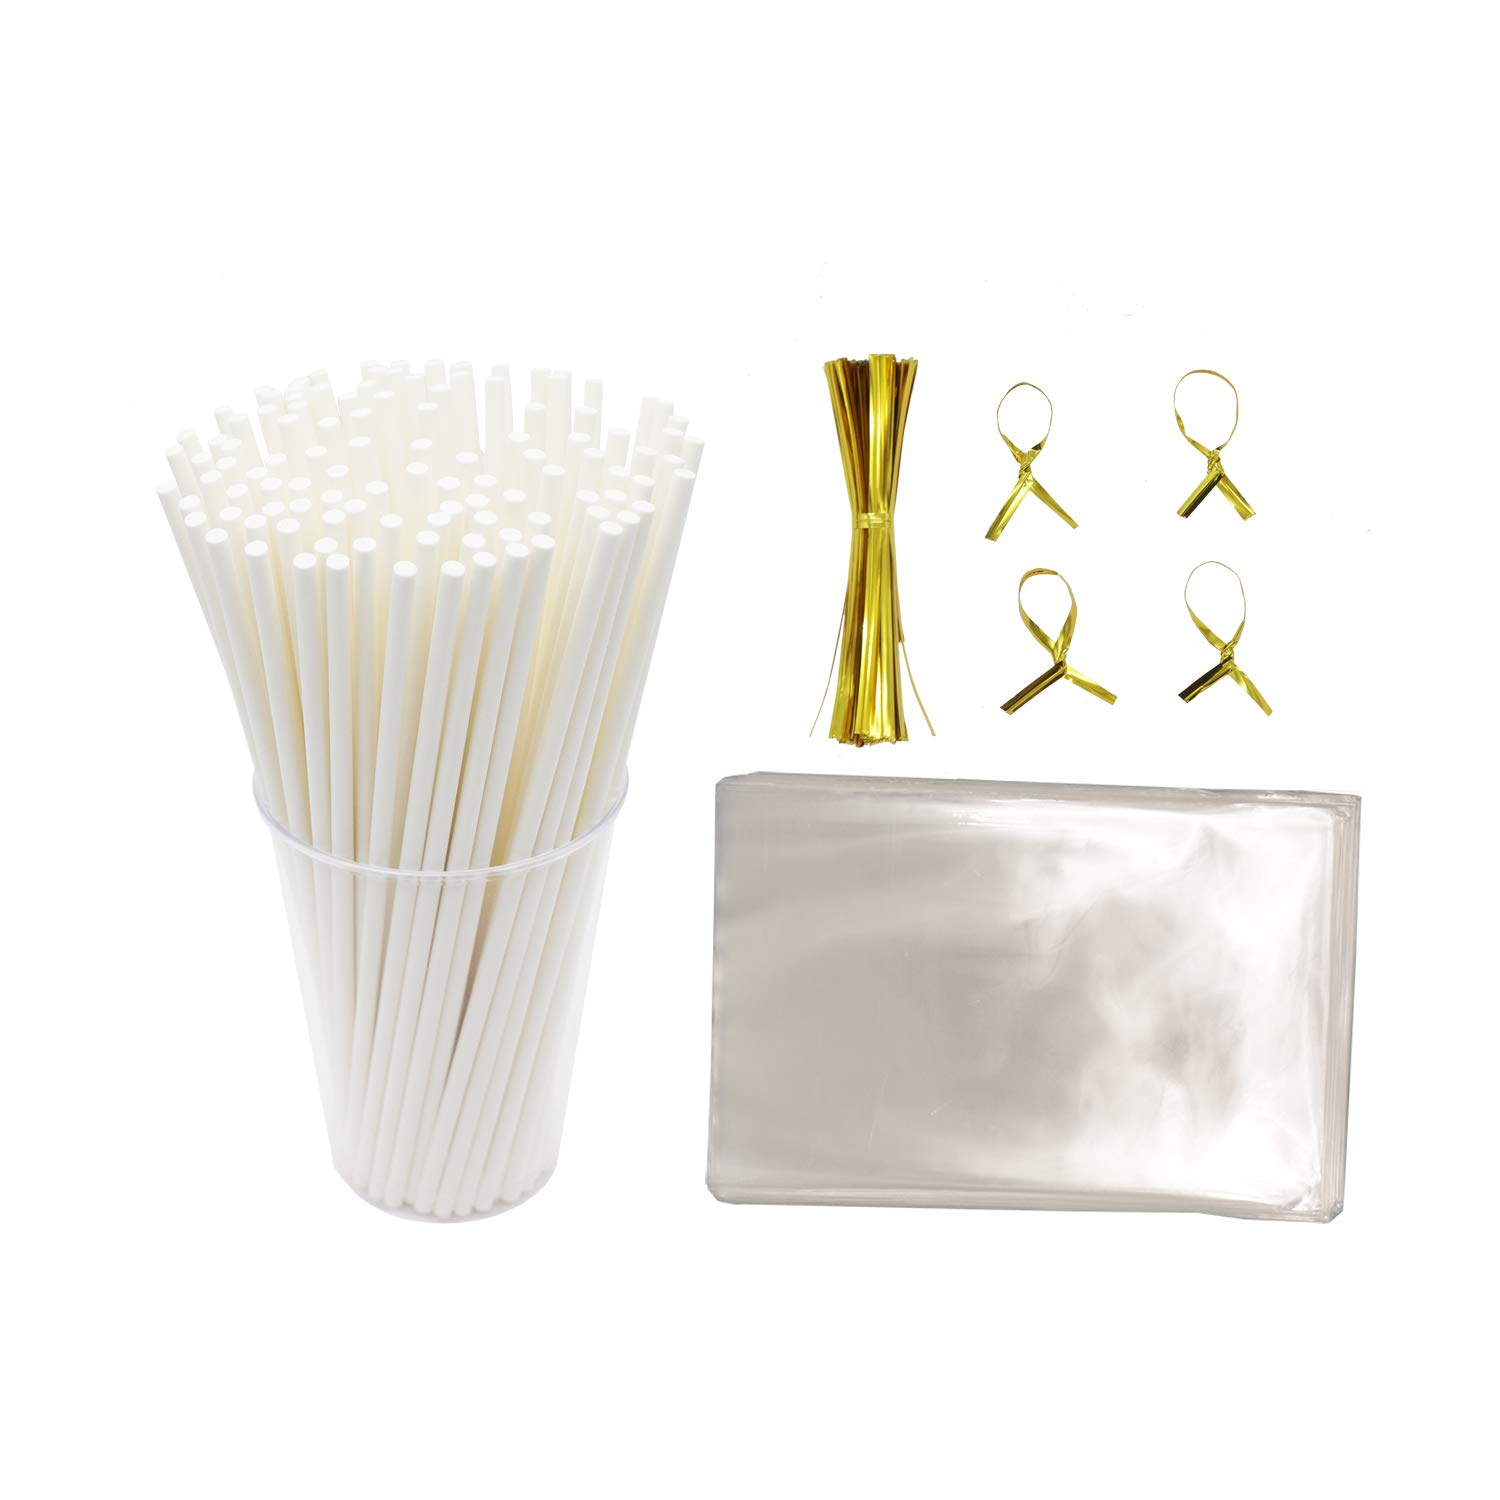 Lollipop wrapping kit including Paper Cookie Sticks (Oven Use 300pcs) Clear Treat Bags (300pcs) and Golden Metallic Twist Tie (300pcs) for cookie candy cake pop